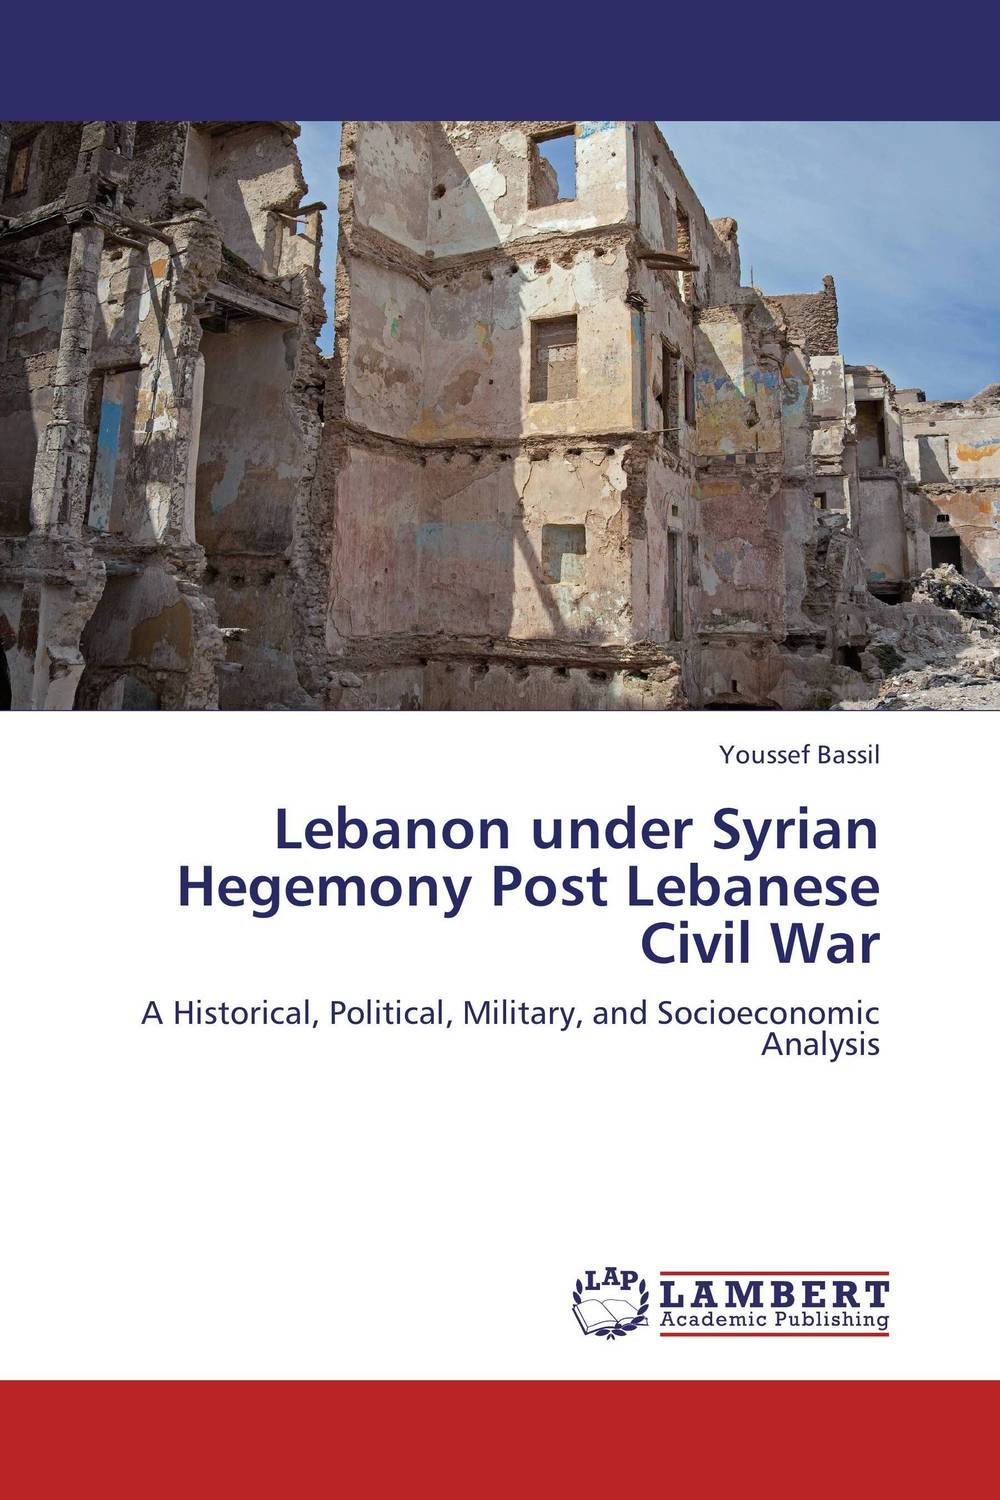 Lebanon under Syrian Hegemony Post Lebanese Civil War sardor abdullaev mukhudinovich civil war and post war transformation